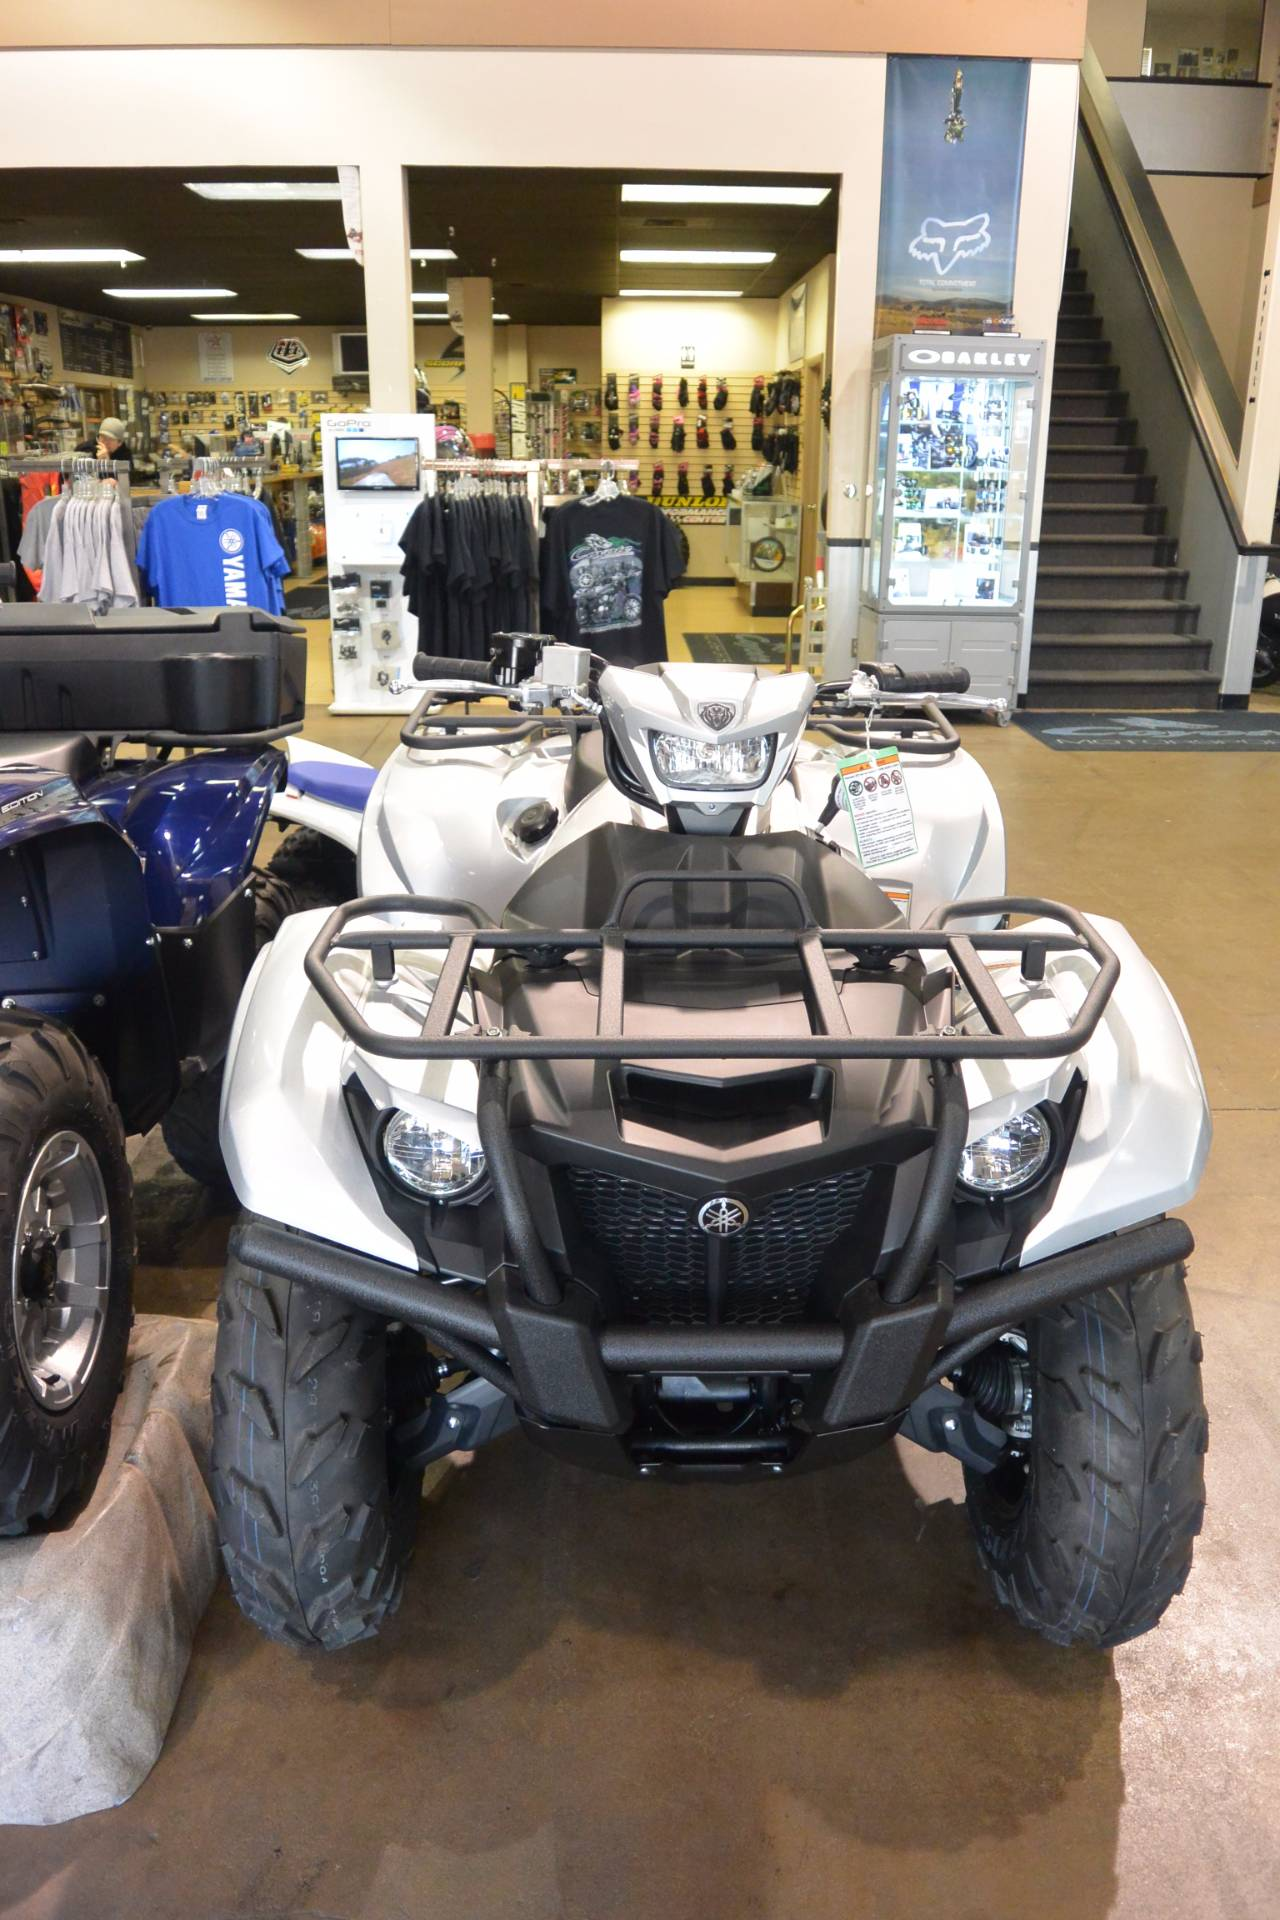 2018 Yamaha Kodiak in Denver, Colorado